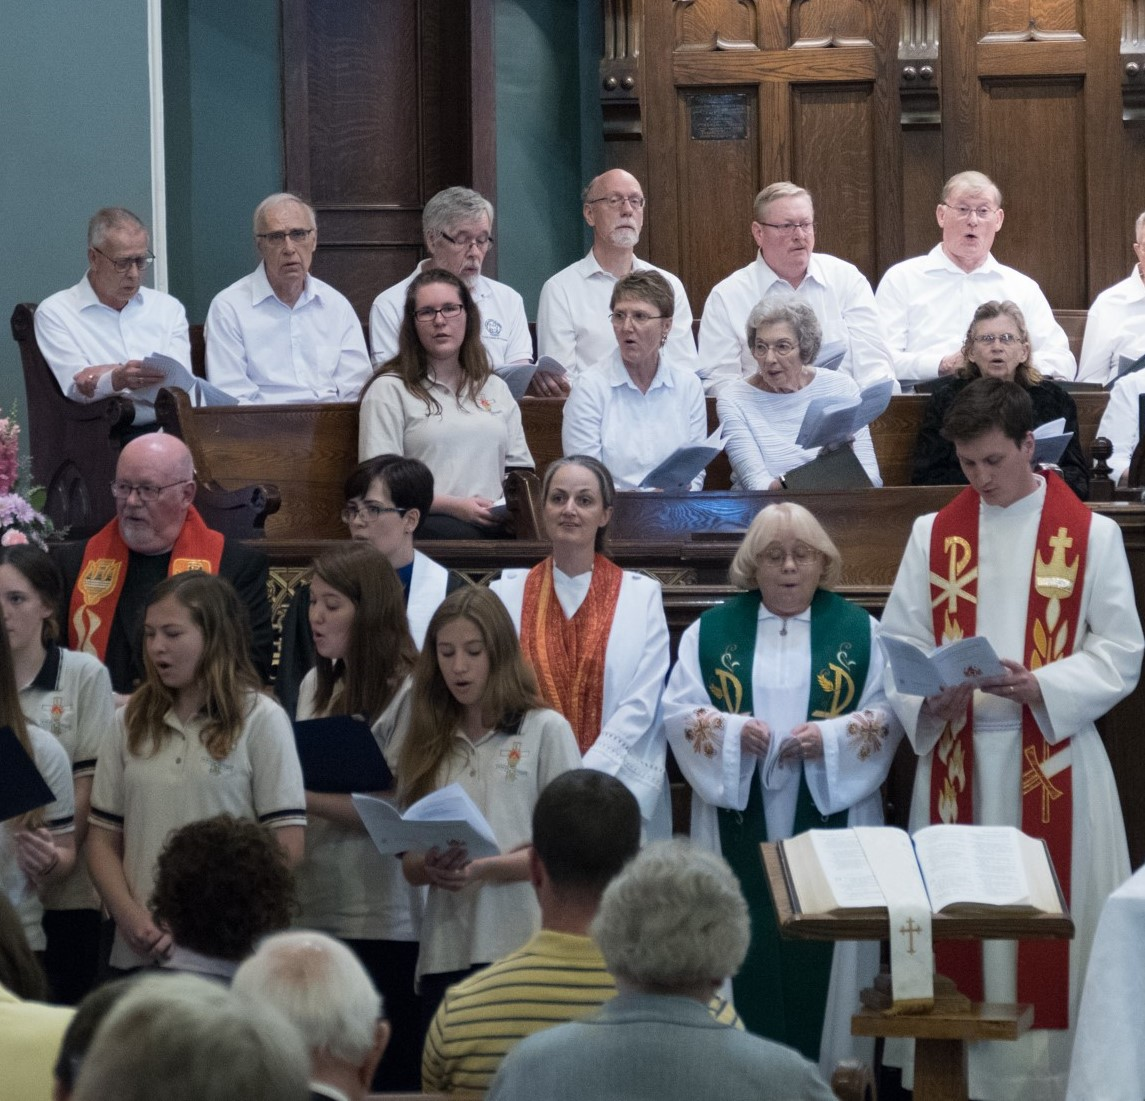 Celebrants in sanctuary after being ordained / readmitted